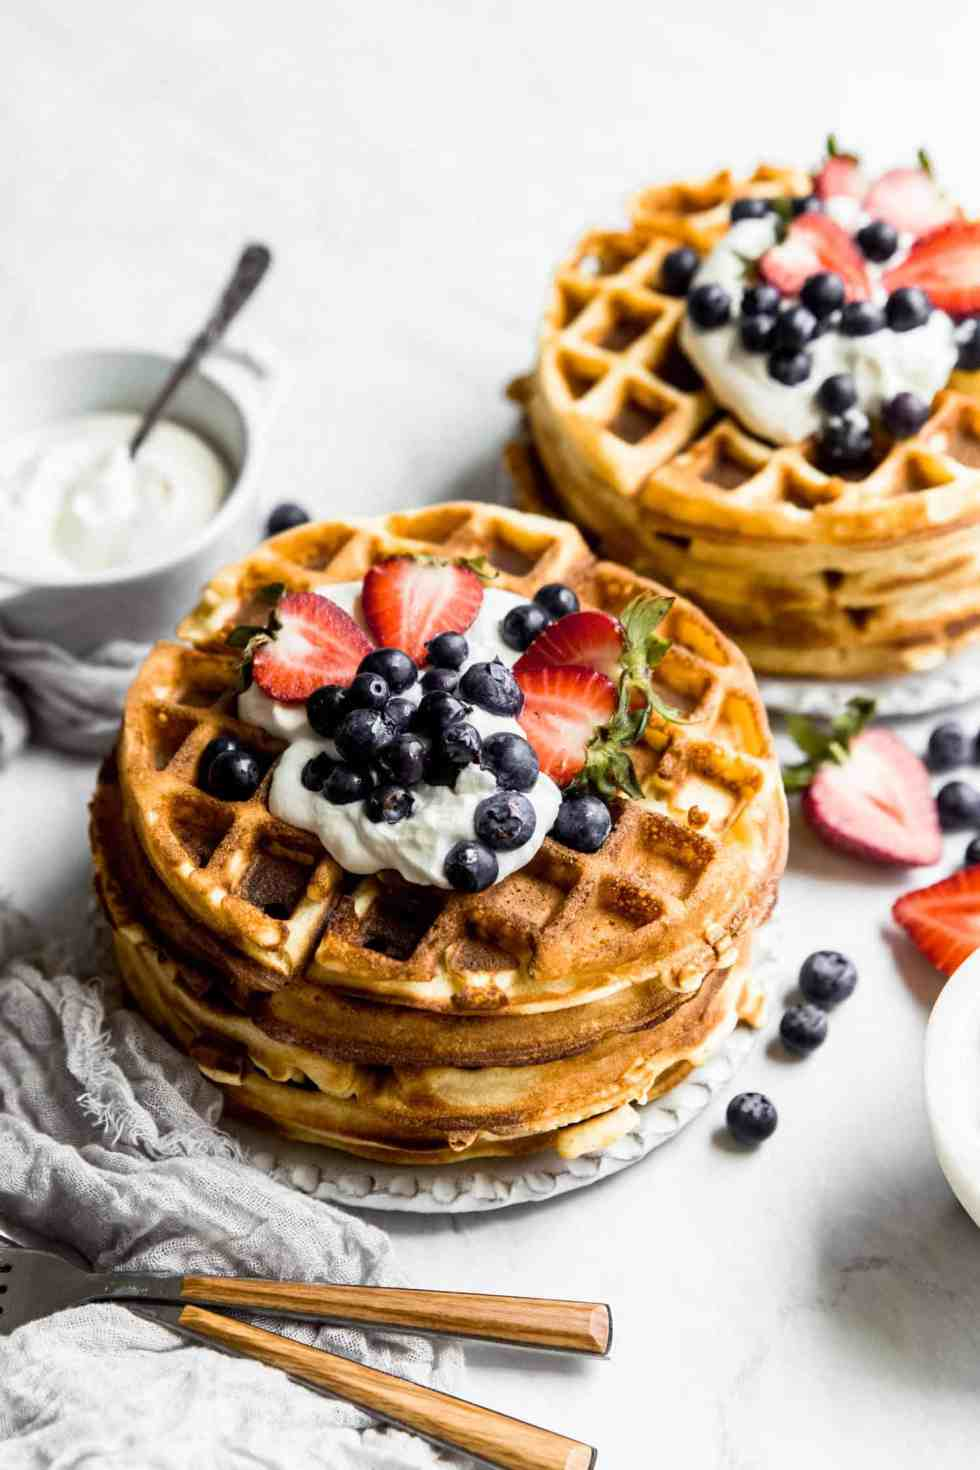 two stacks of paleo pancakes on plates with berries on top